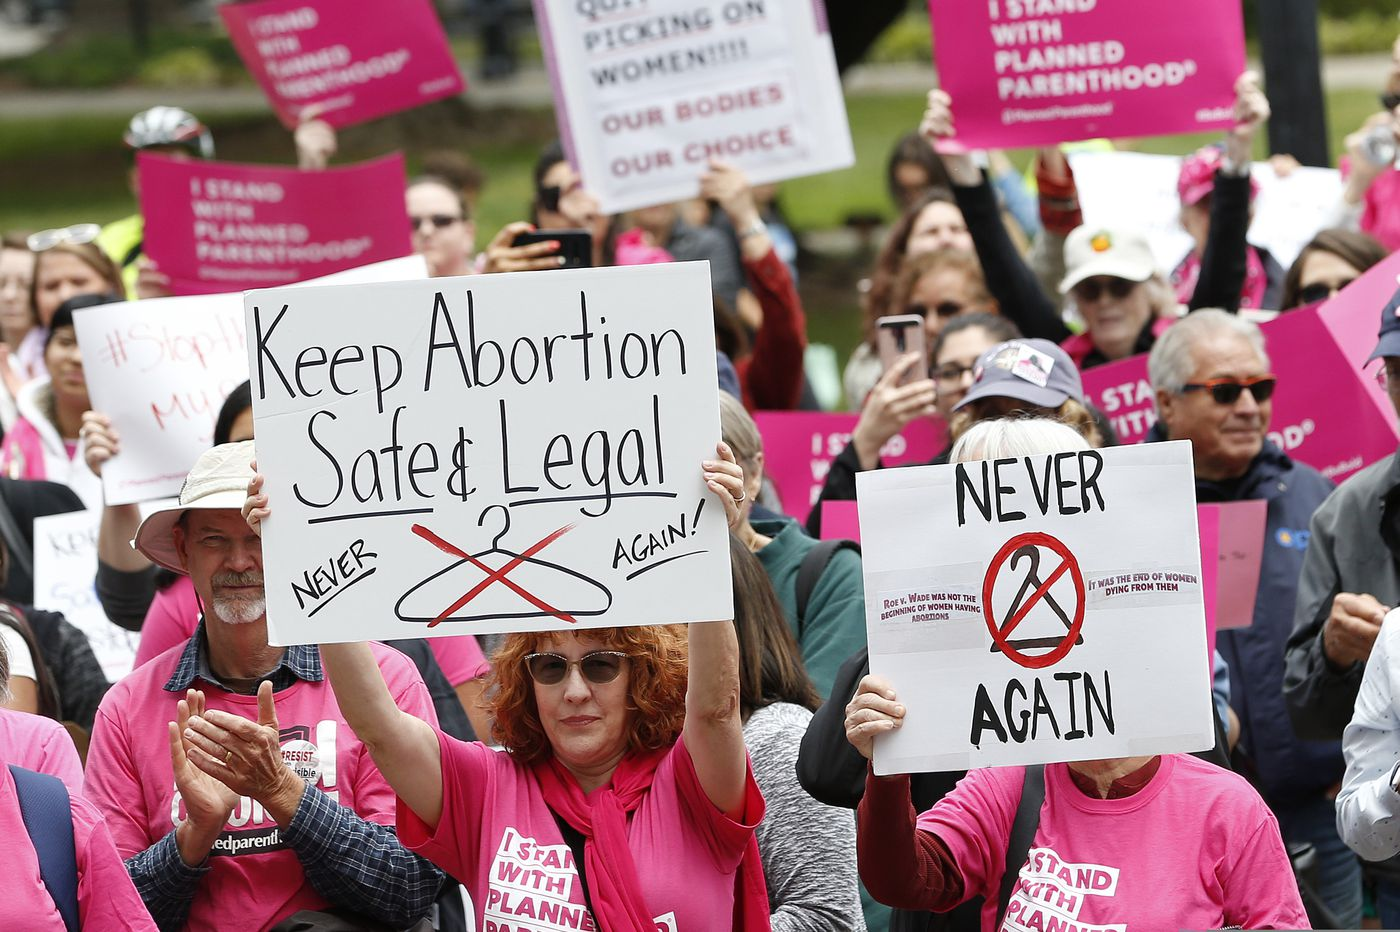 Nevada lawmakers close to repealing tough abortion rules